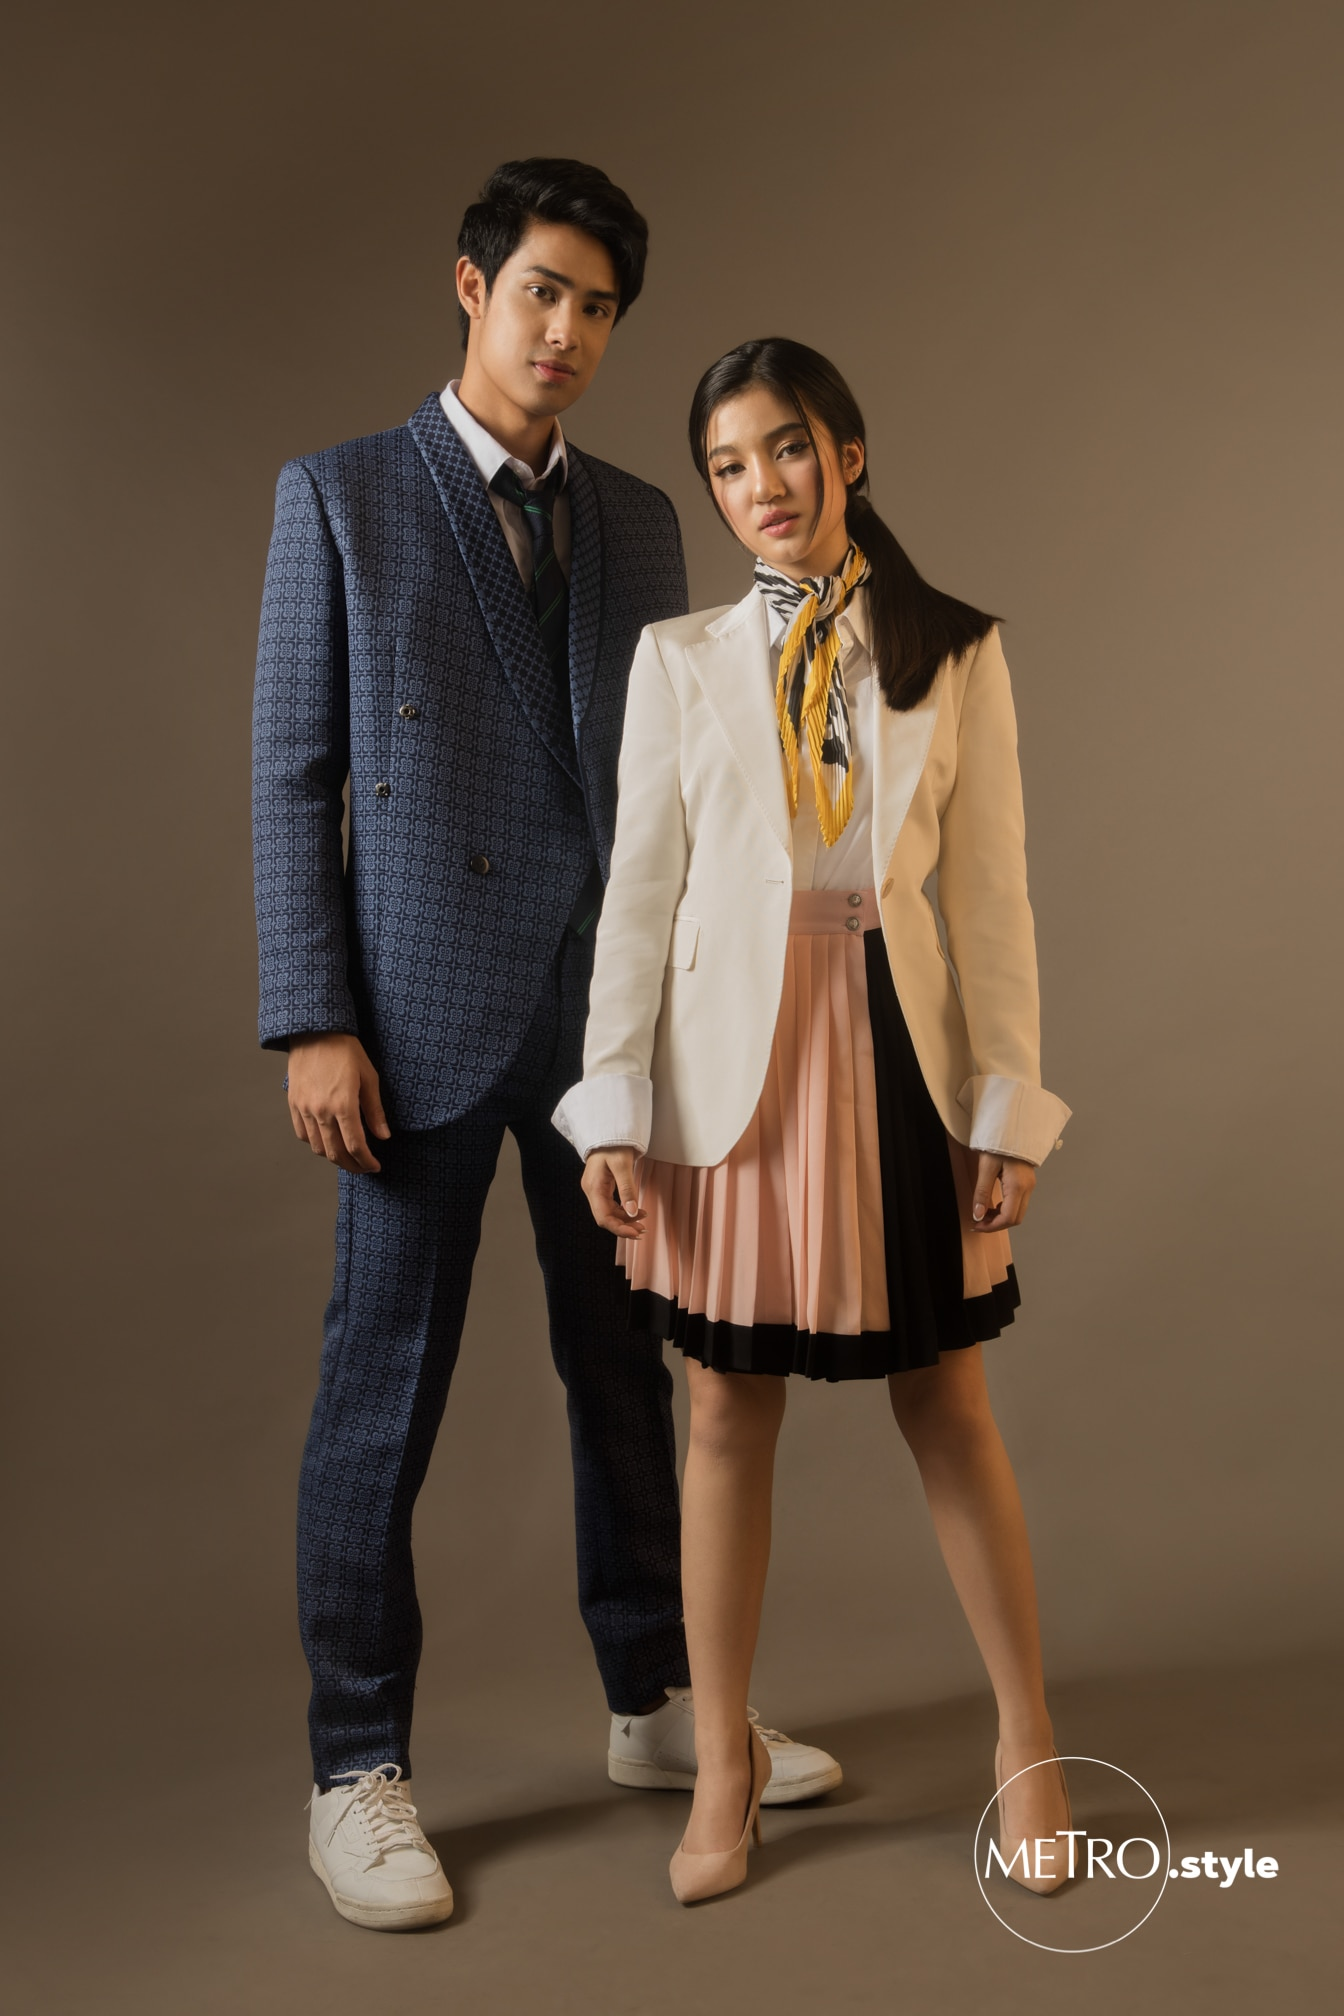 MetroStyle Donny Pangilinan and Belle Mariano 1